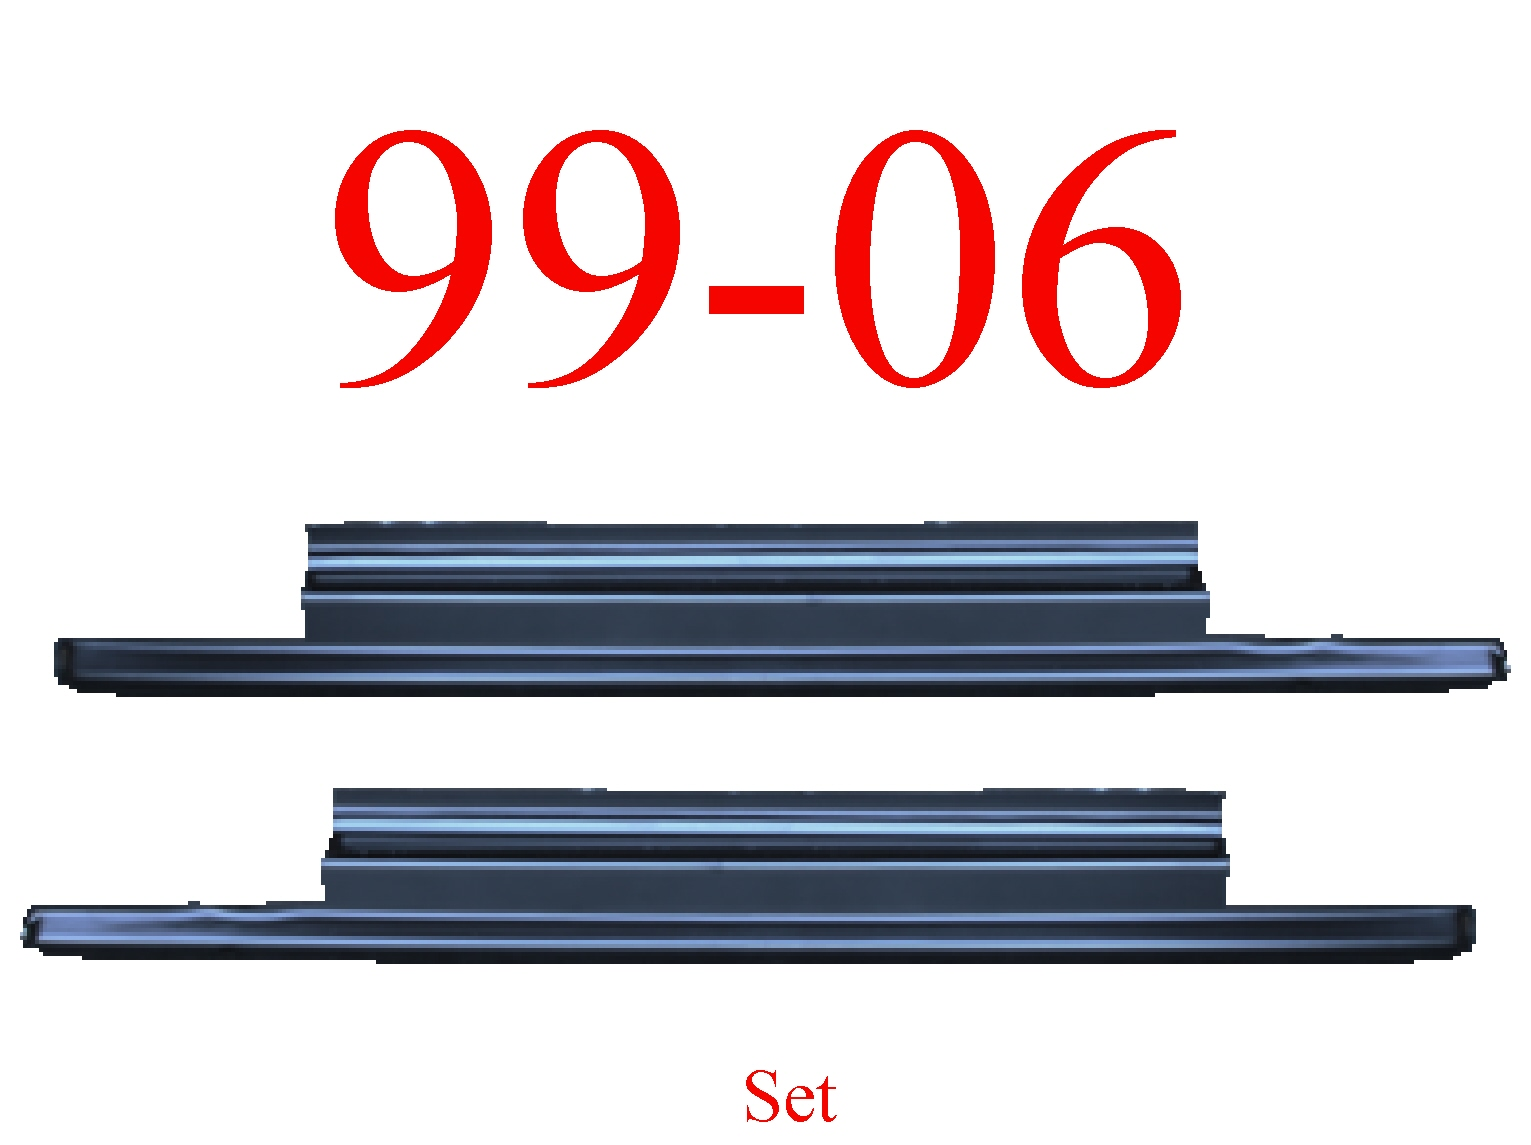 99 06 1.0MM Slip-On Rocker Panel SET, 2Dr Regular Cab